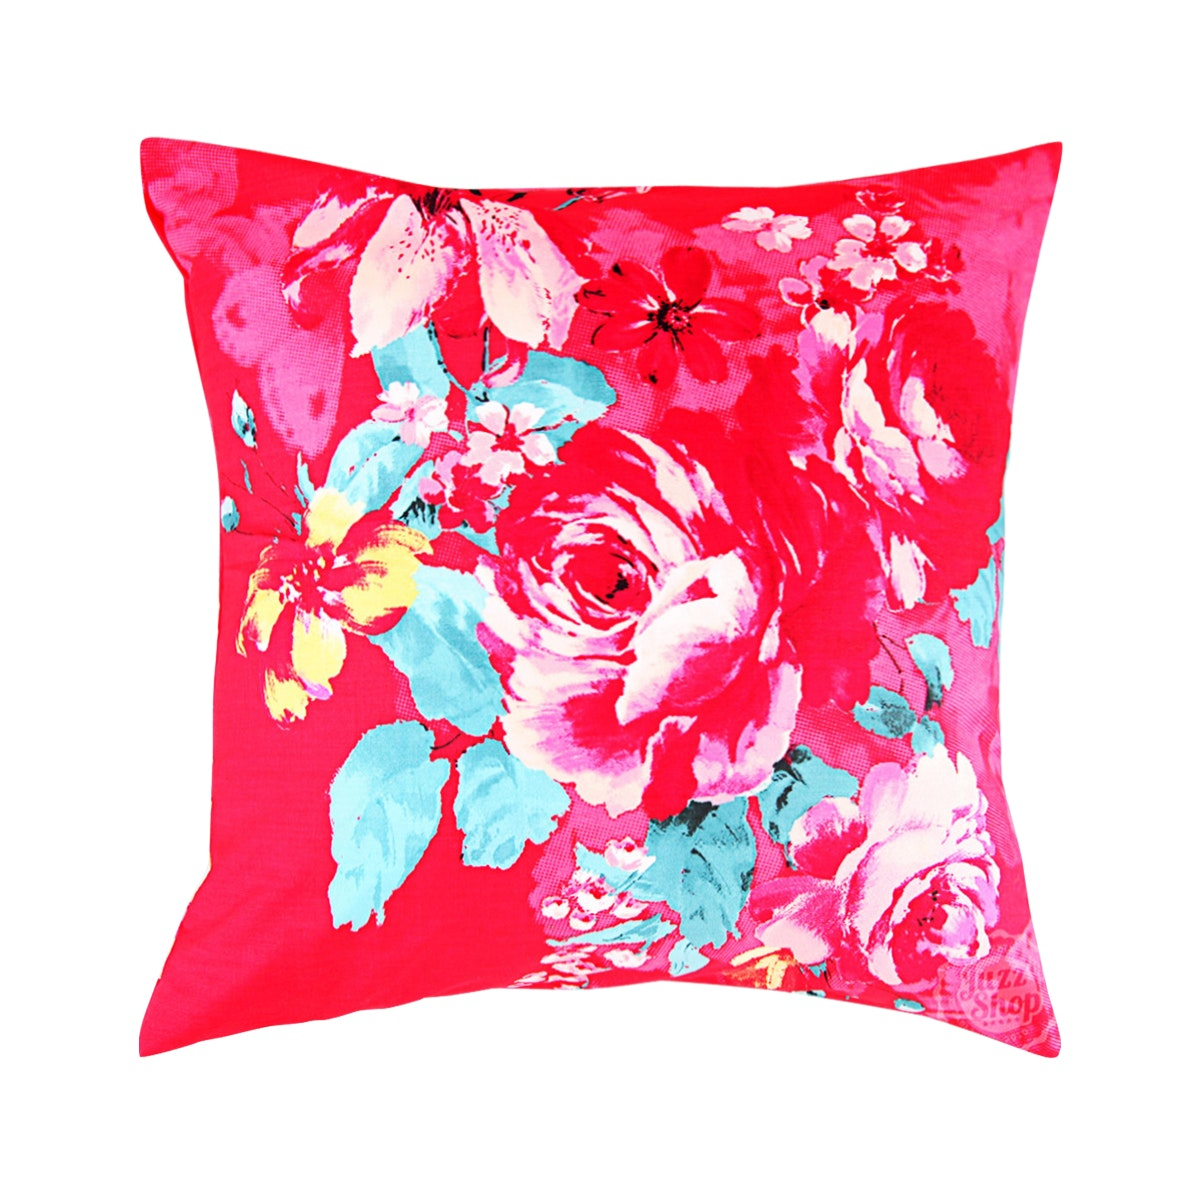 Eolins Cushion Cover Deluxe JSPS5007 50x50cm